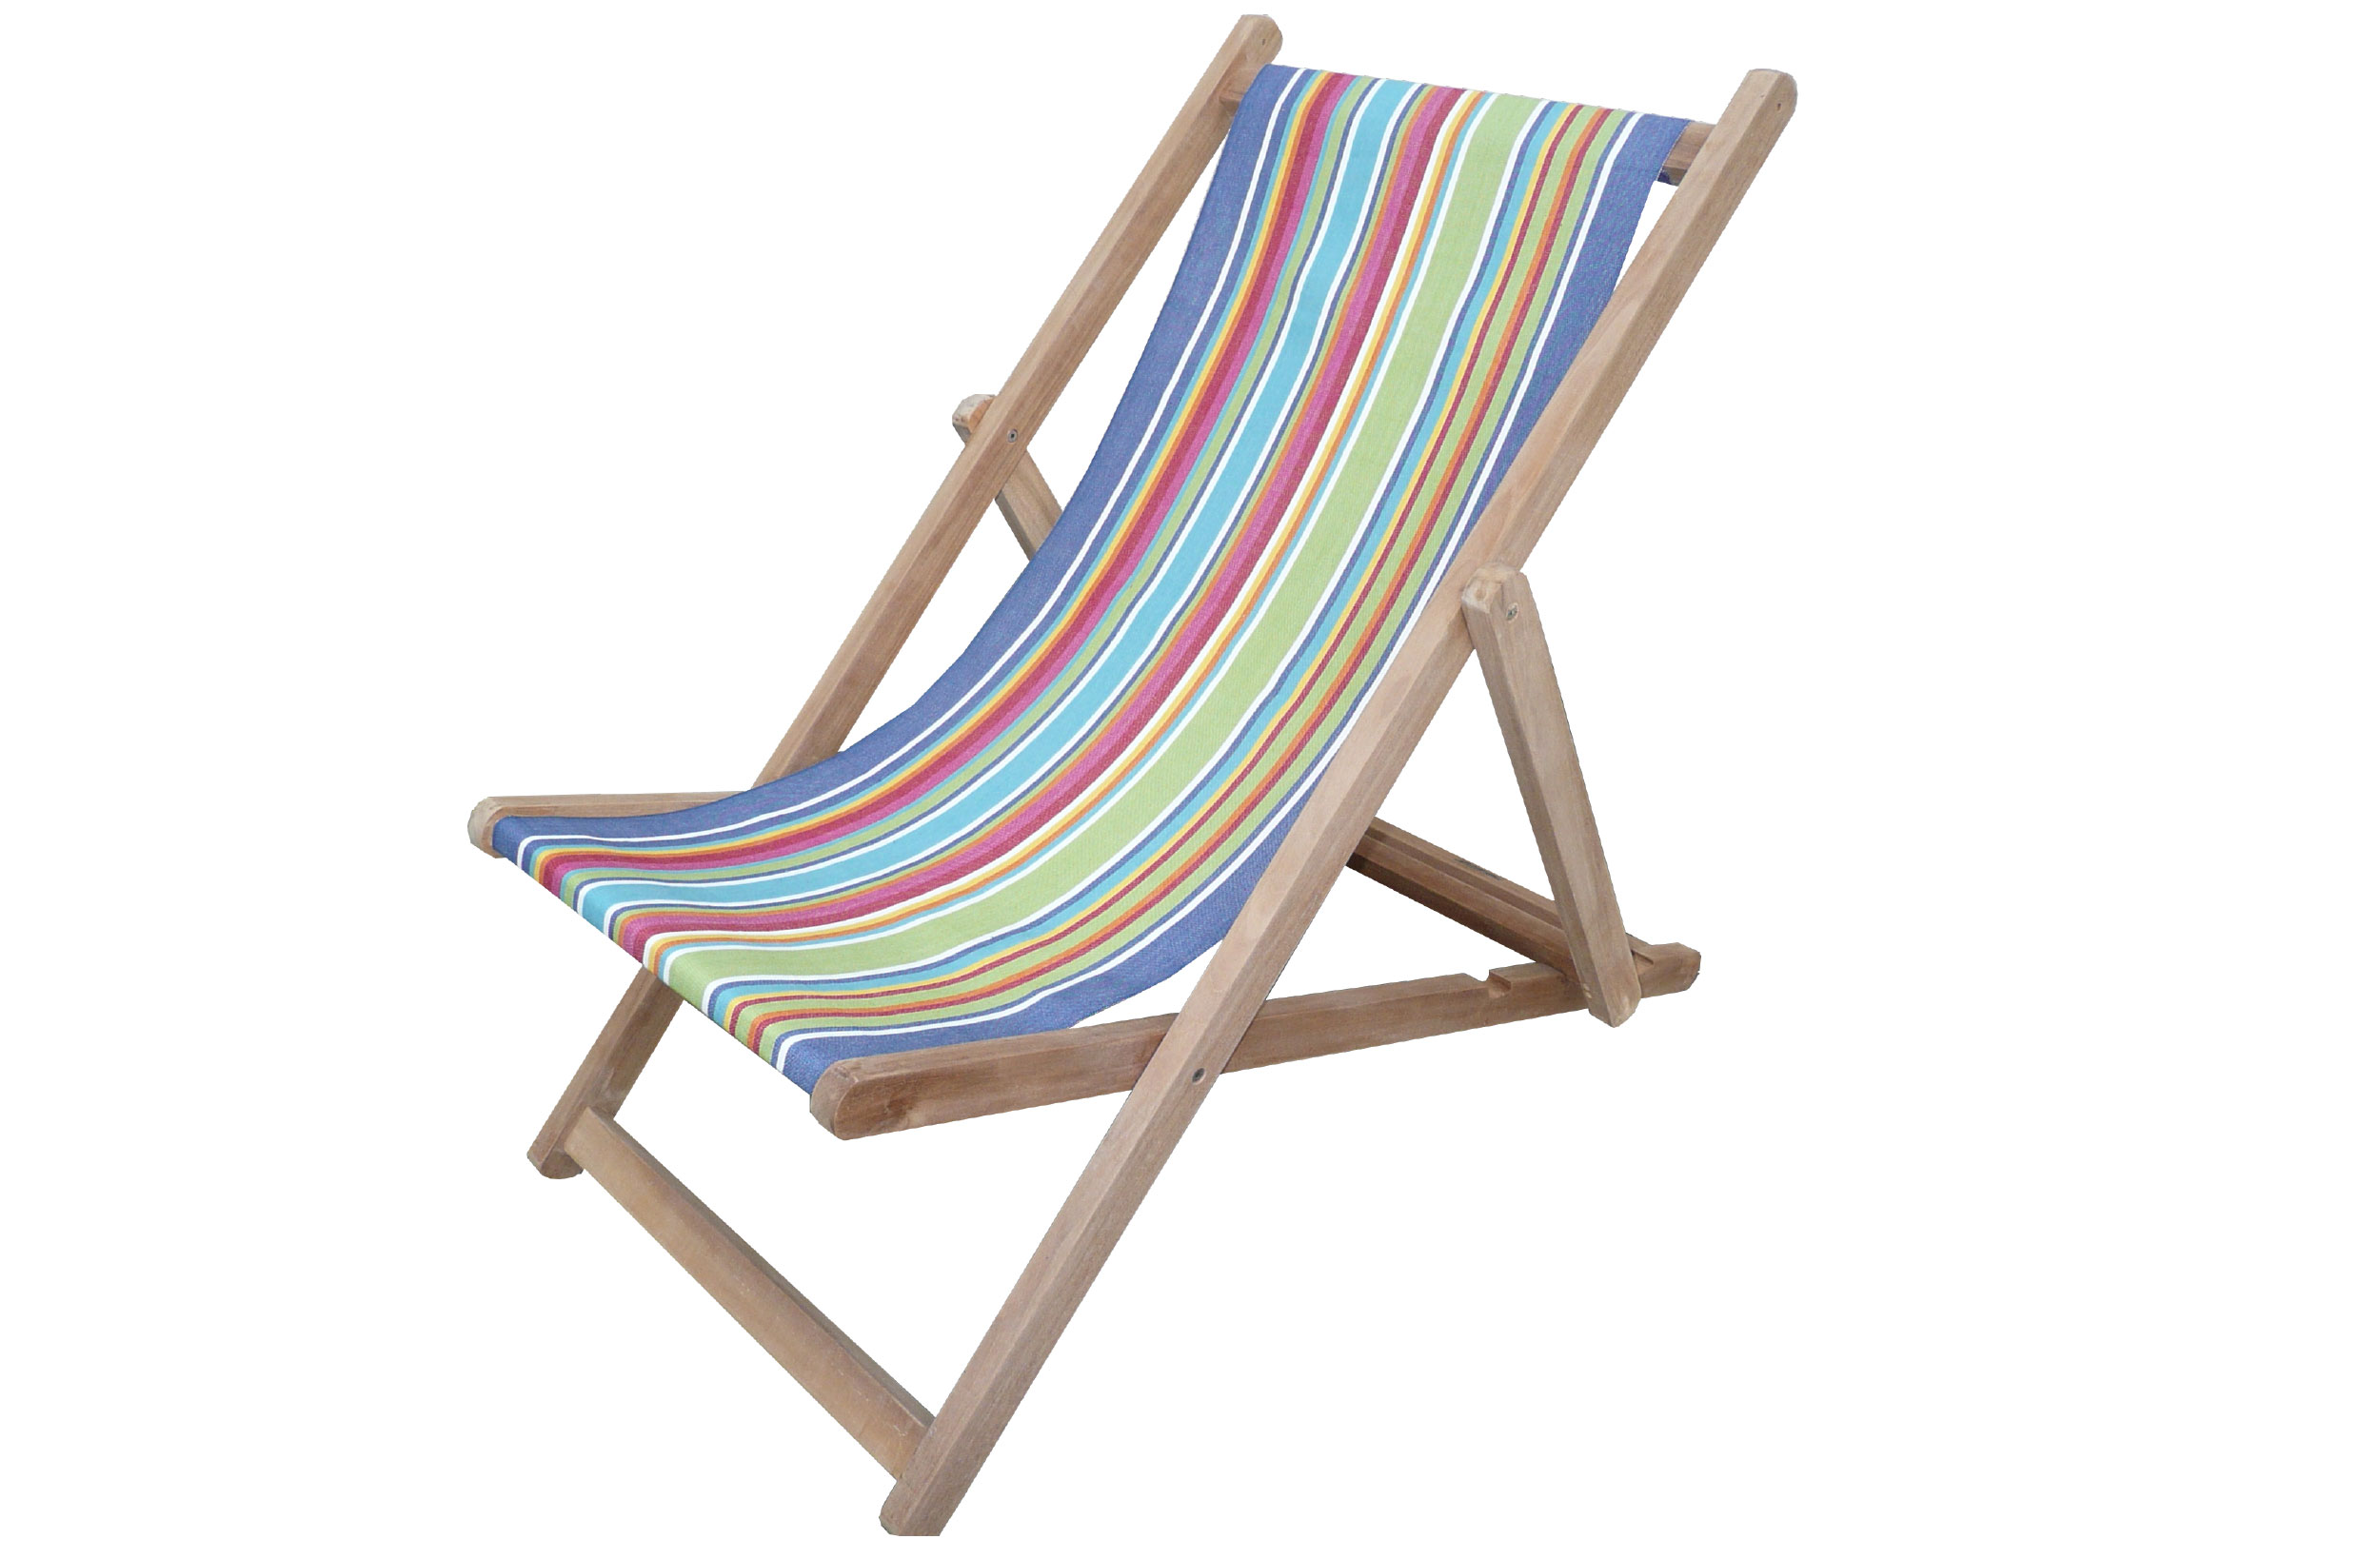 blue, green, red - Deckchairs | Buy Folding Wooden Deck Chairs